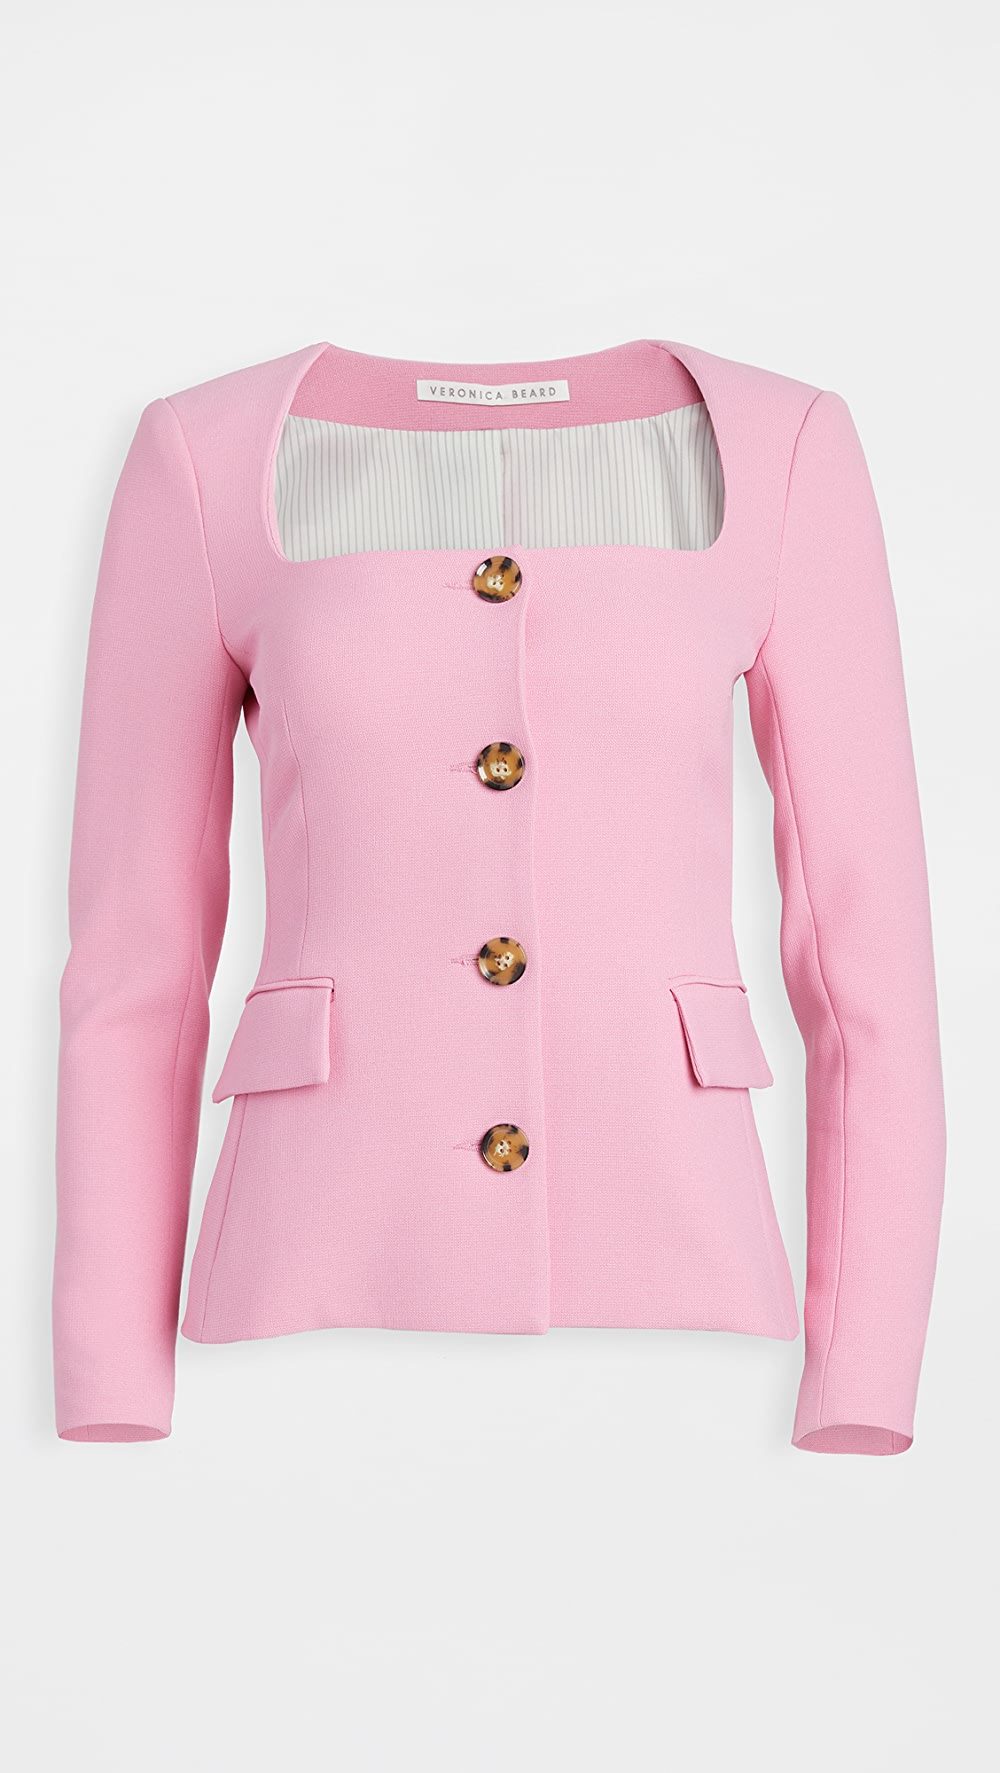 Ambitious Veronica Beard - Ria Jacket To Win A High Admiration And Is Widely Trusted At Home And Abroad.